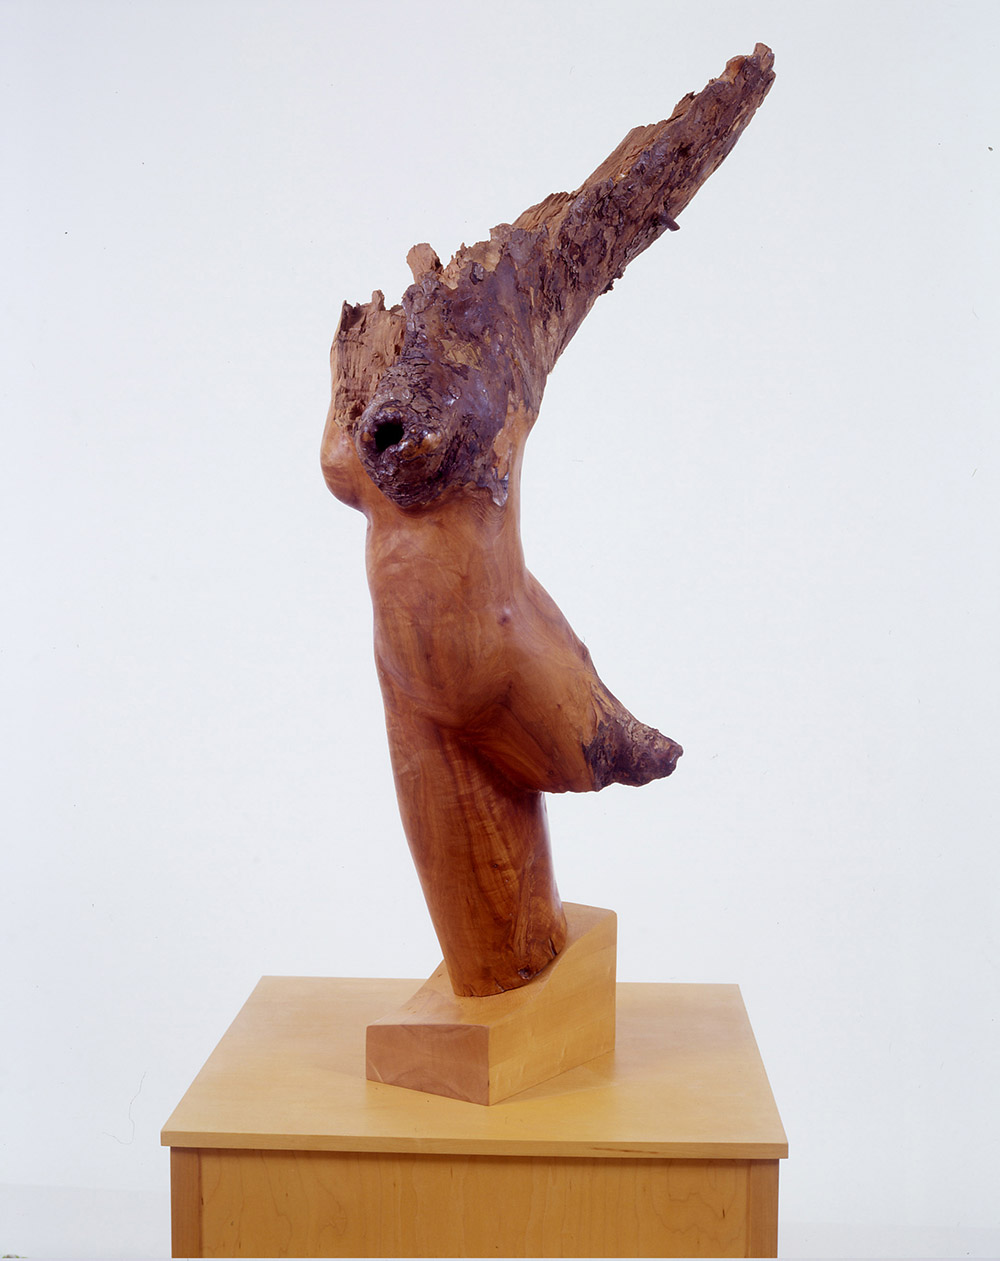 16.b-Ono-Victory-1996.-Apple-wood-129.5-x-68.6-x-35.6-cm-x.jpg